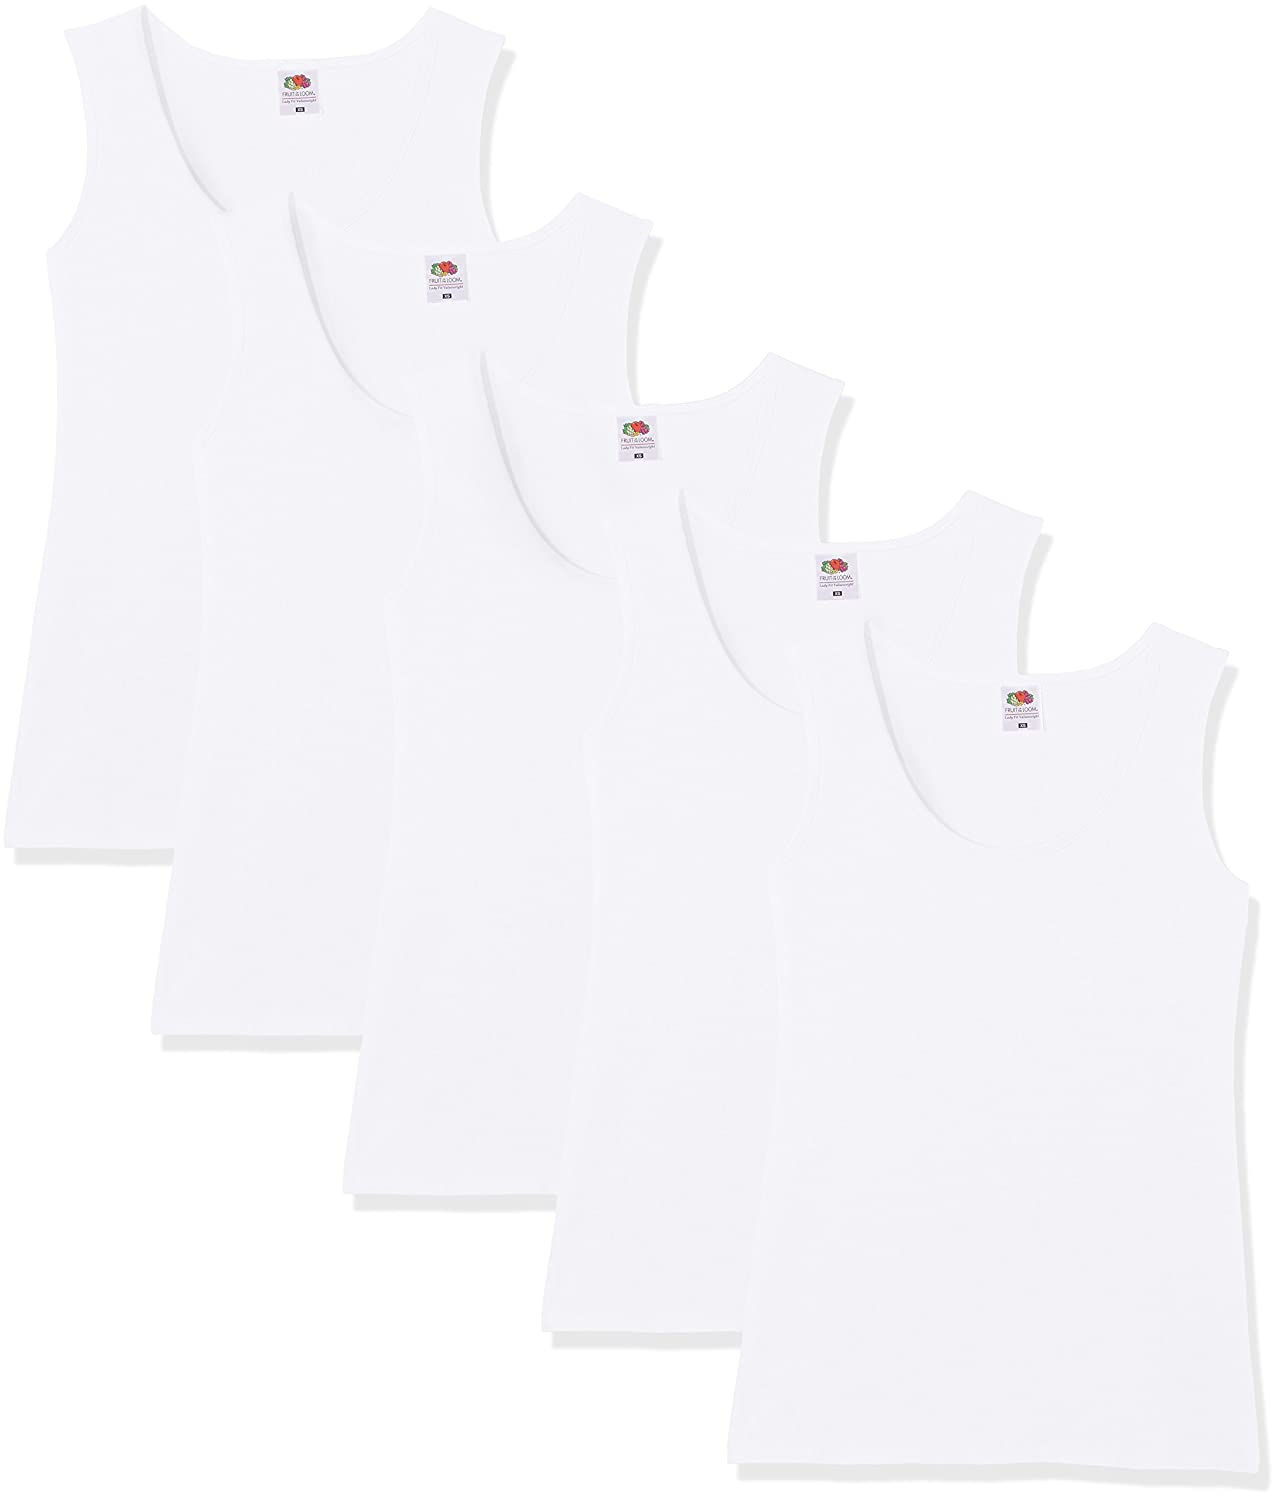 Fruit of the Loom Valueweight Camiseta (Pack de 5) para Mujer